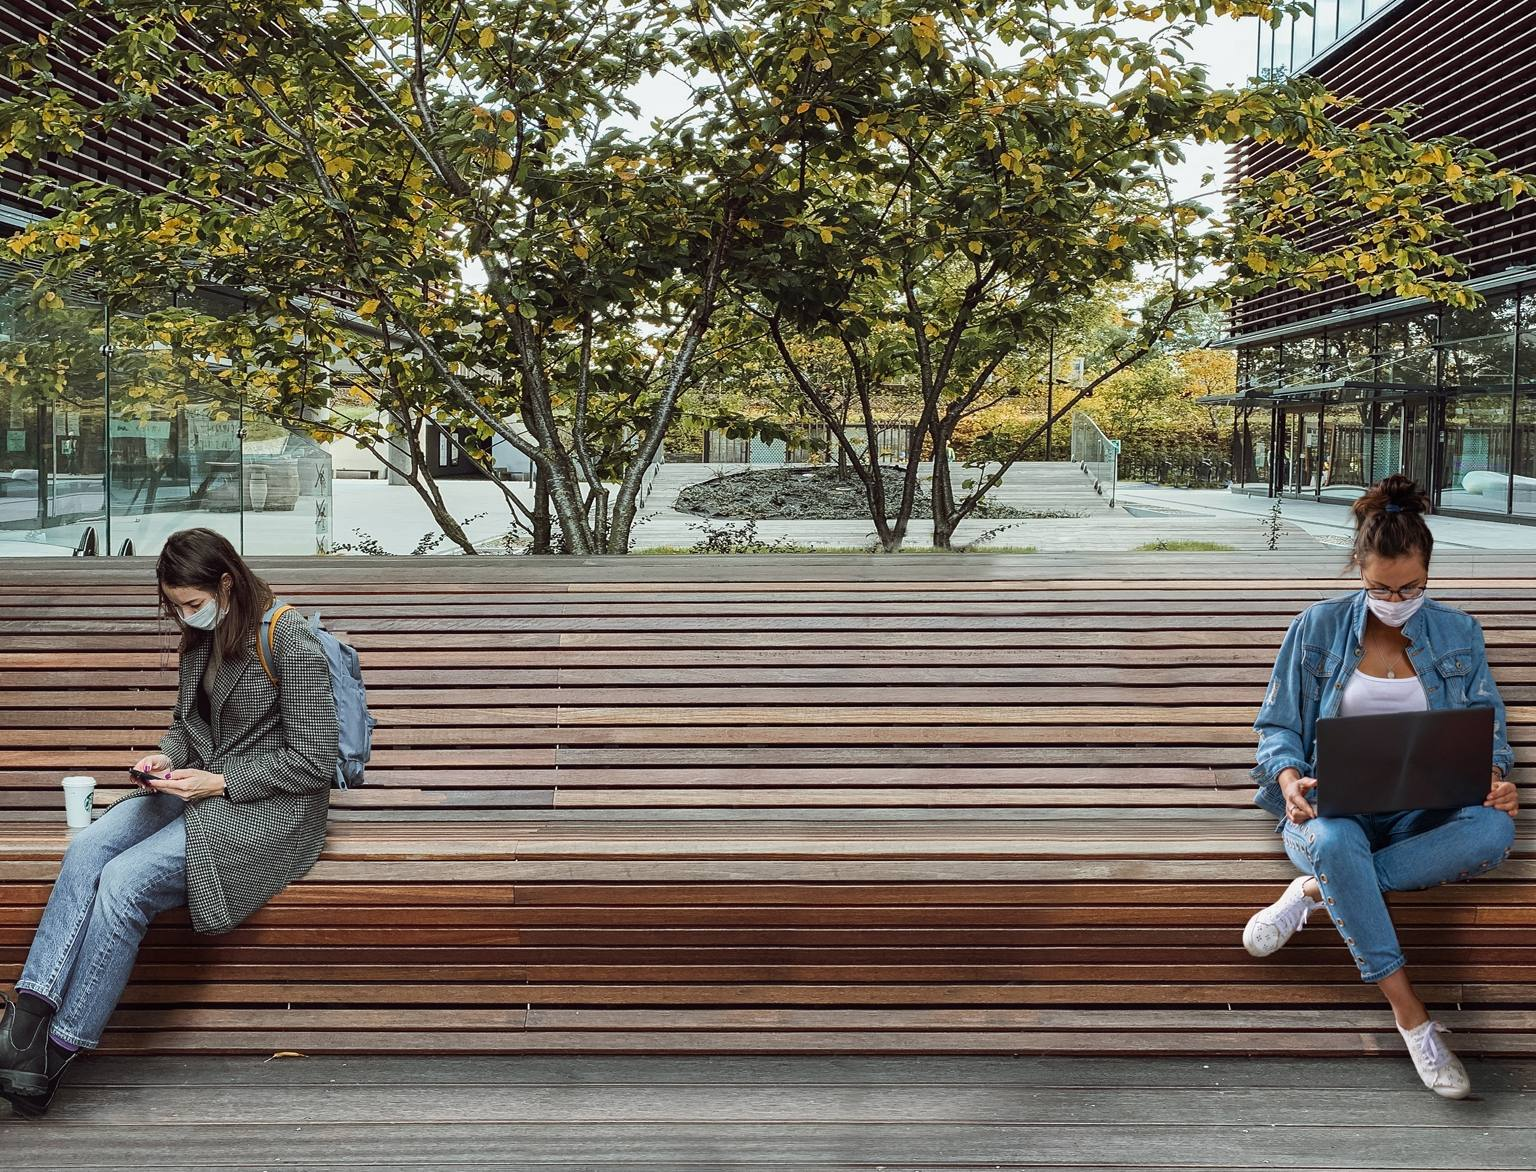 two masked people, sitting 6 feet apart on a bench